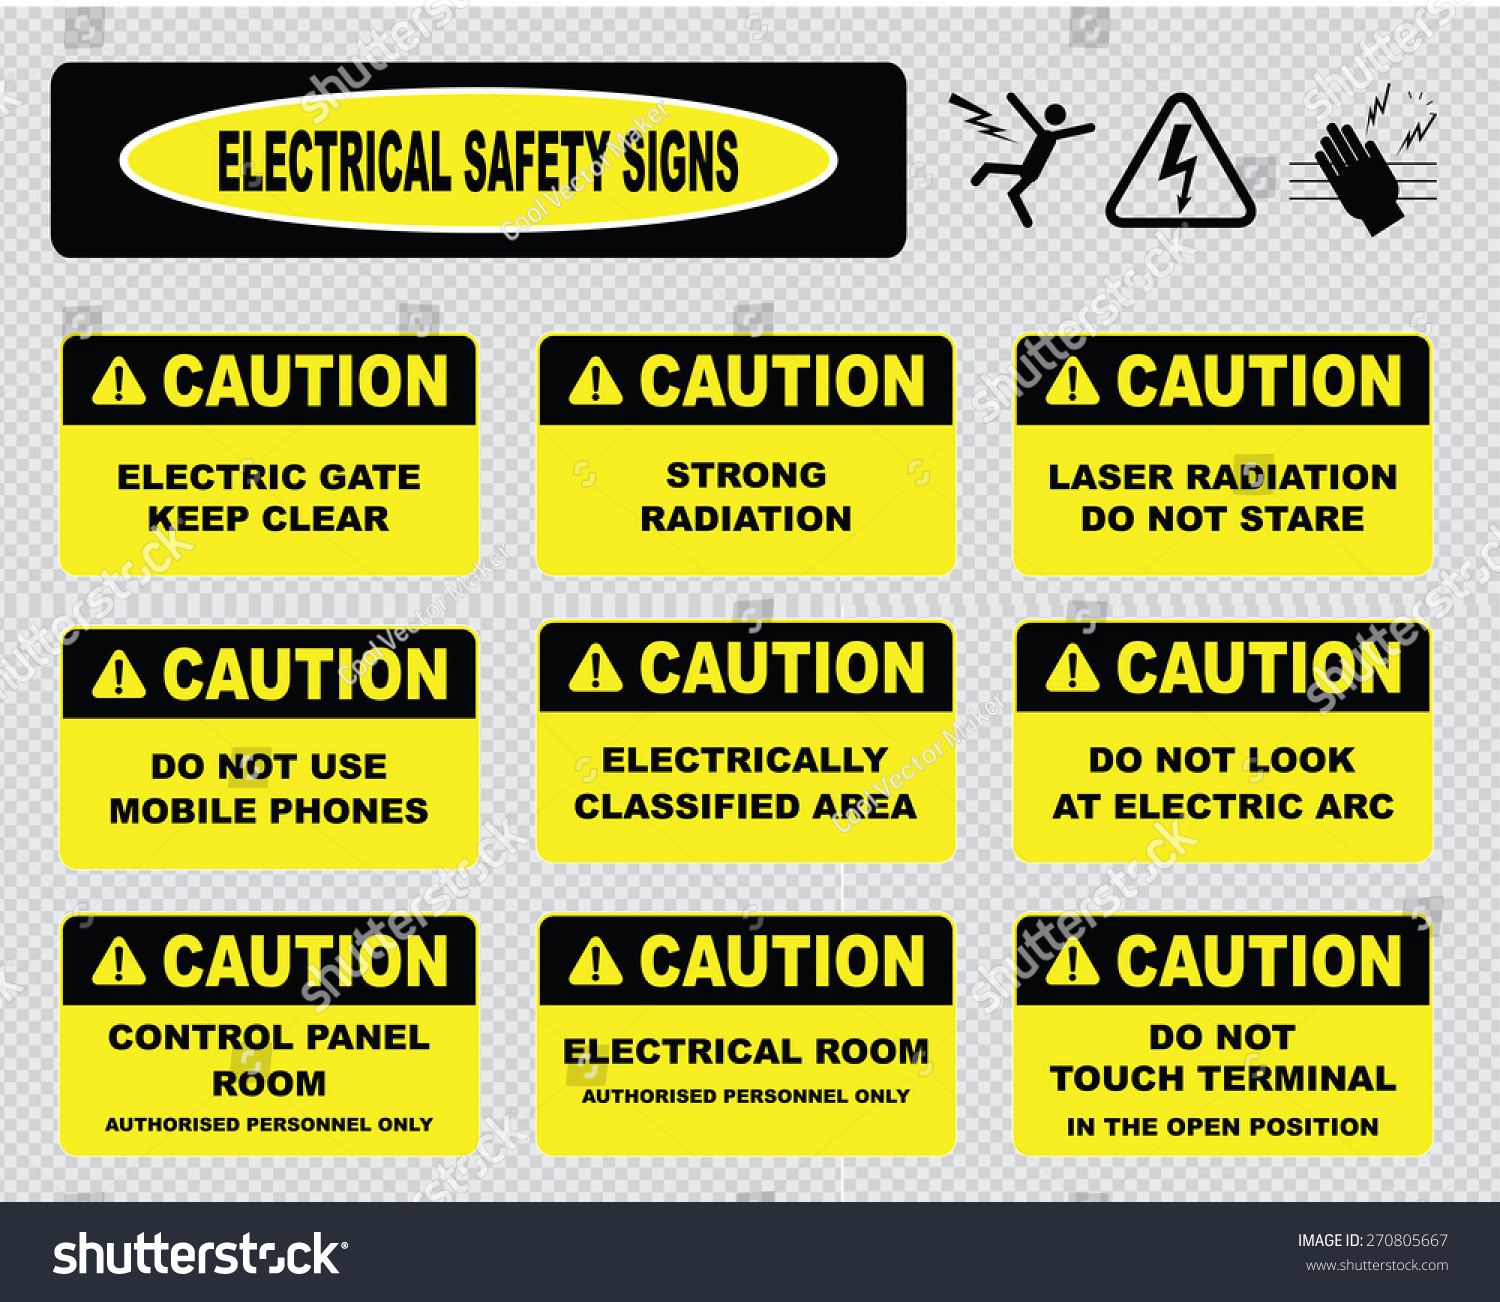 Electrical Safety Signs Various Caution Signs Stock Vector Royalty